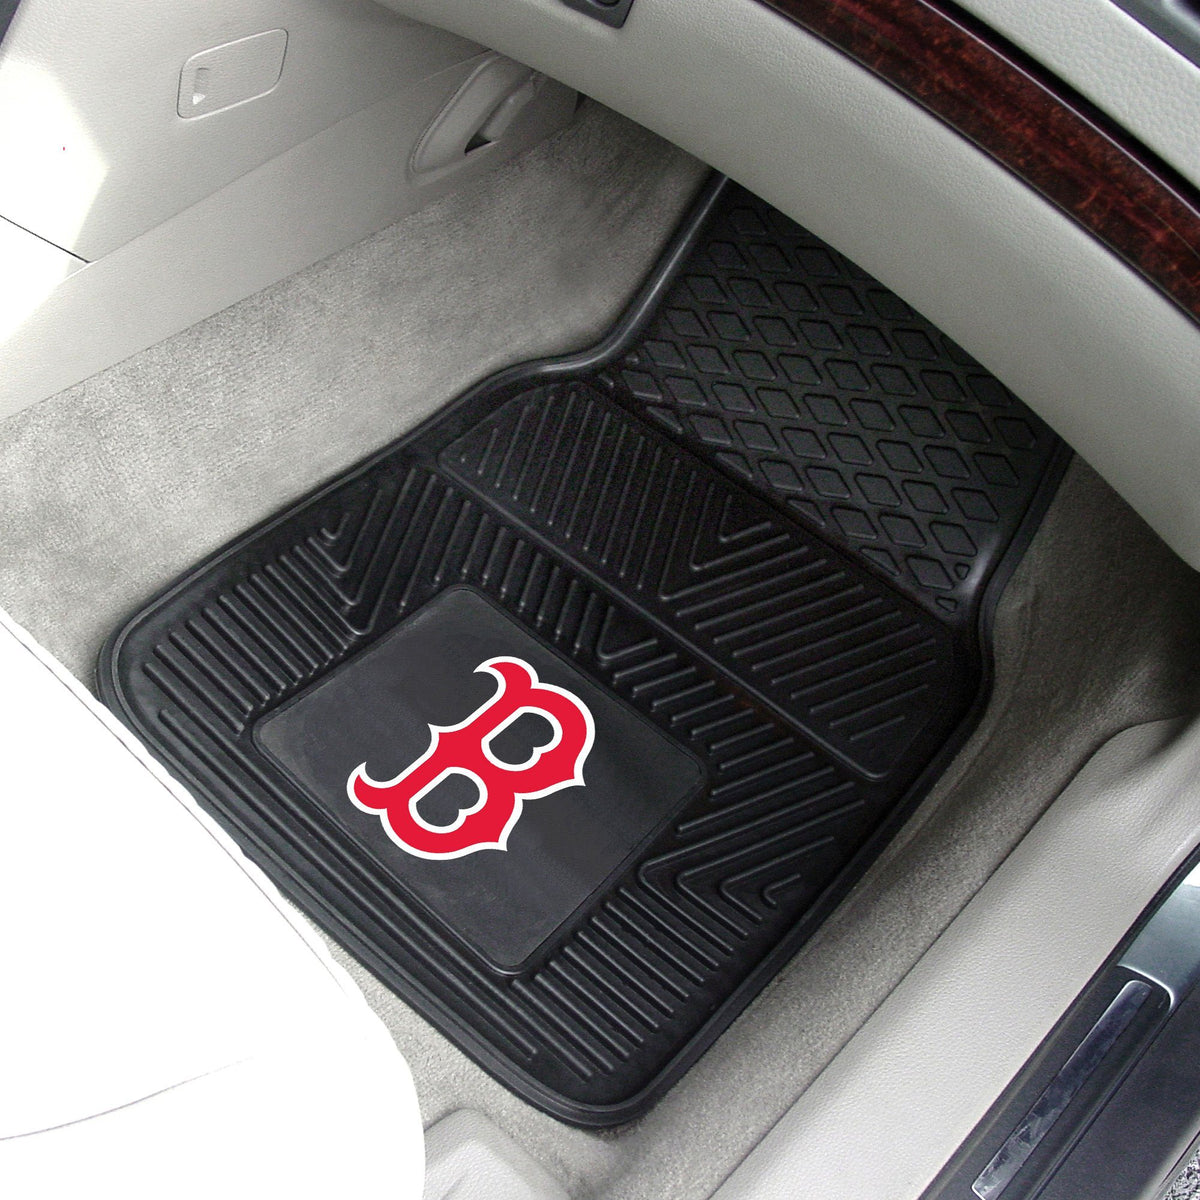 MLB - Vinyl Car Mat, 2-Piece Set MLB Mats, Front Car Mats, 2-pc Vinyl Car Mat Set, MLB, Auto Fan Mats Boston Red Sox